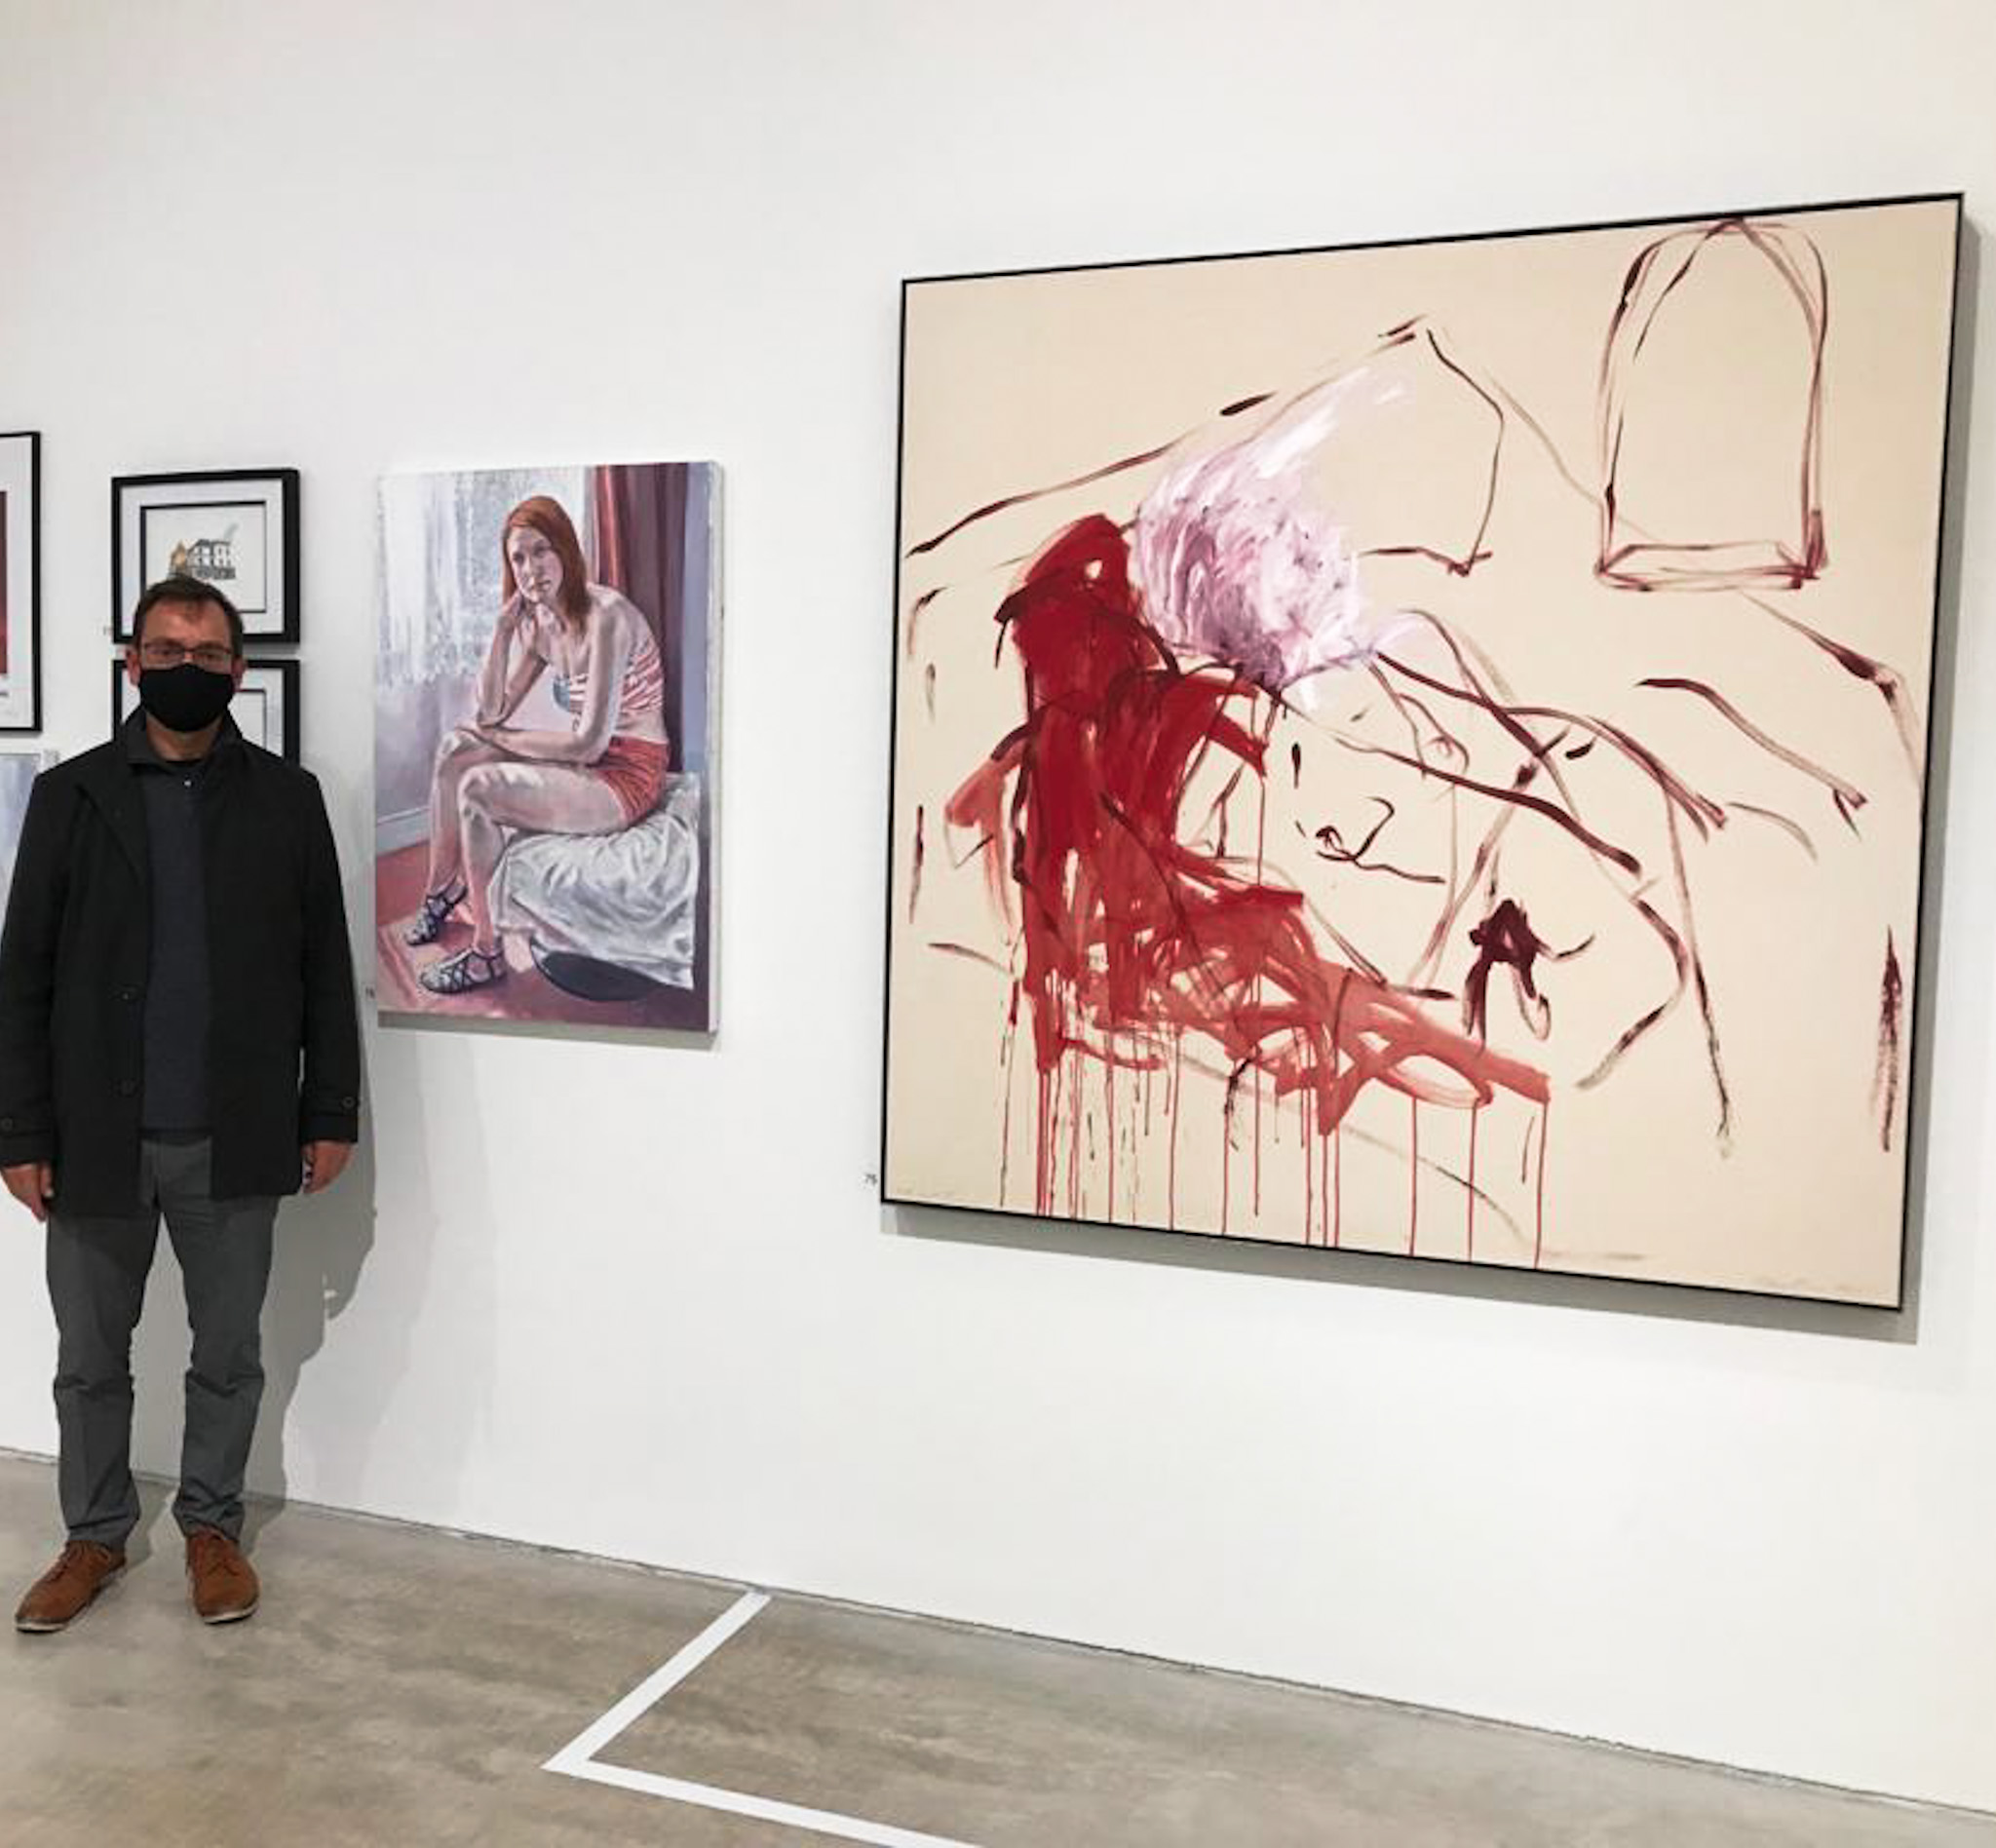 tracey emin exhibits with Peter D'Alessandri